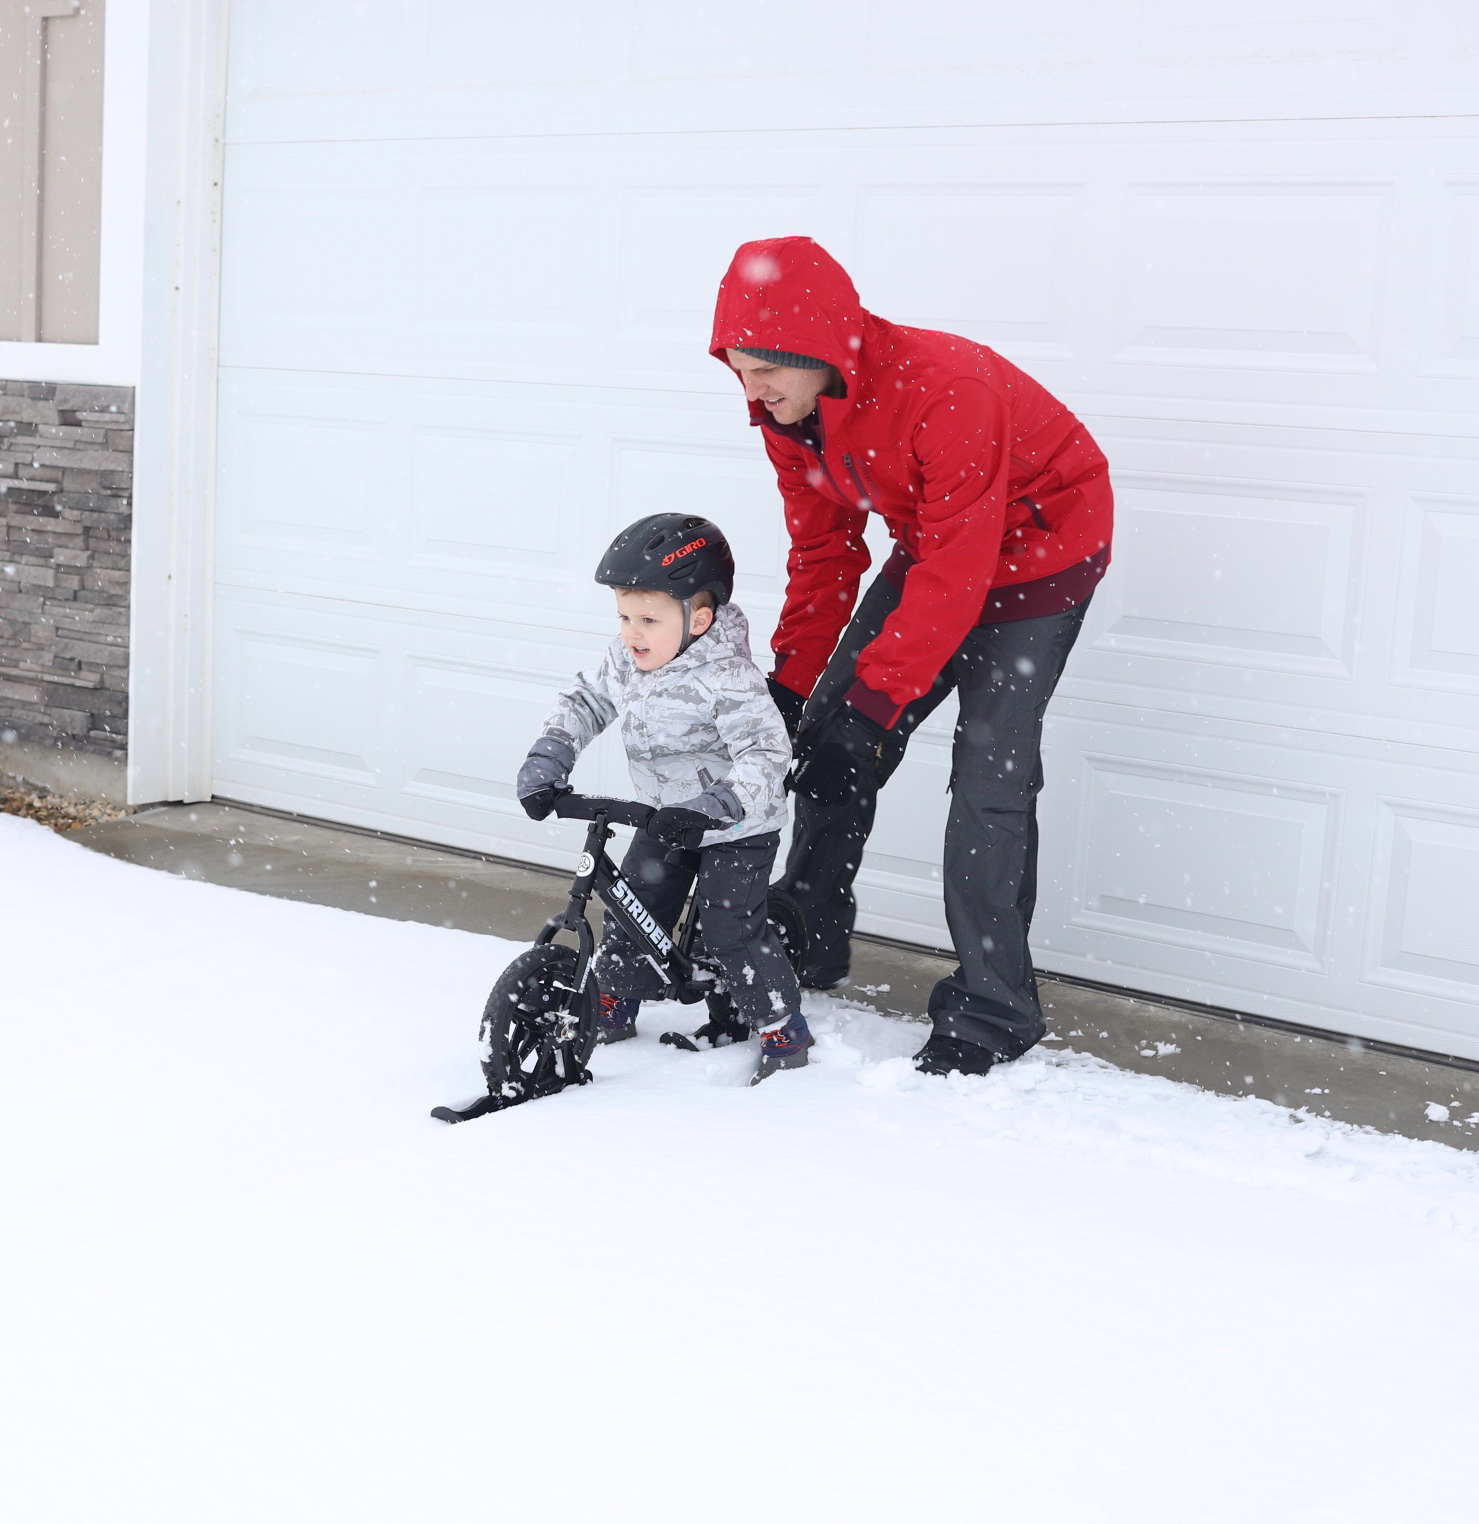 Dad supporting kid on black 12 Sport with skis attached